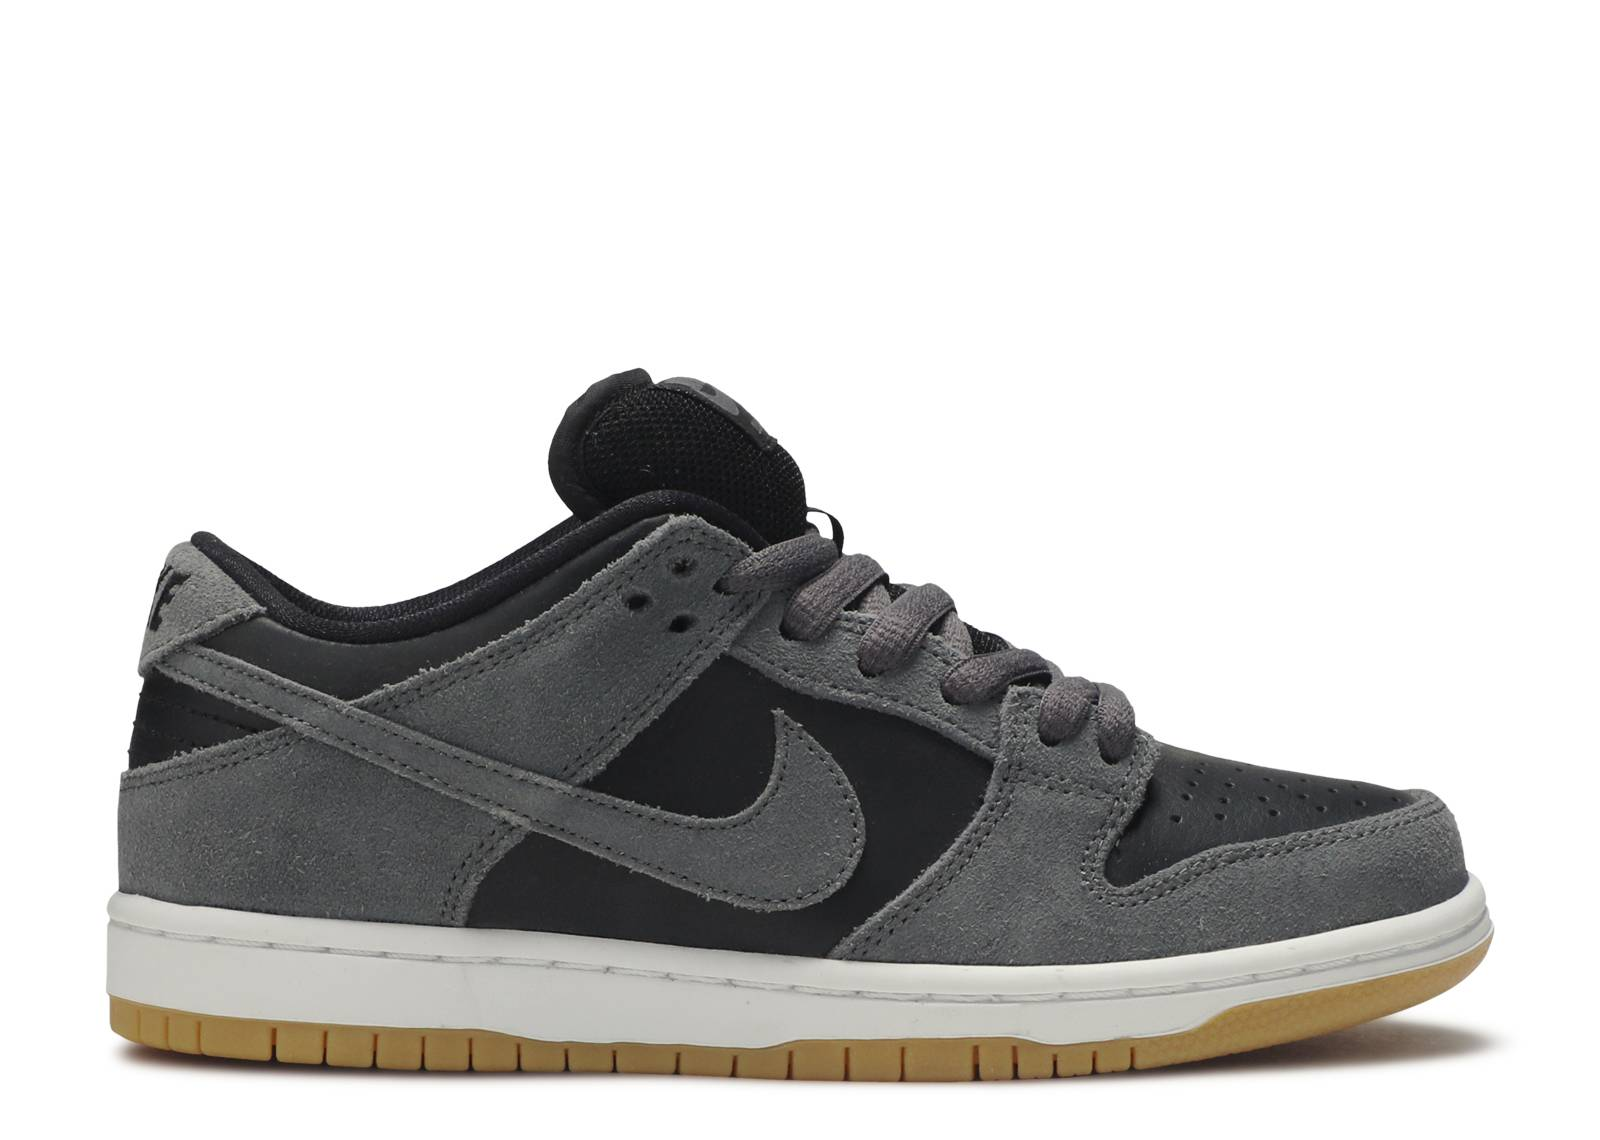 buy popular 251f2 3448a Dunk SB - Nike Dunks - Nike | Flight Club